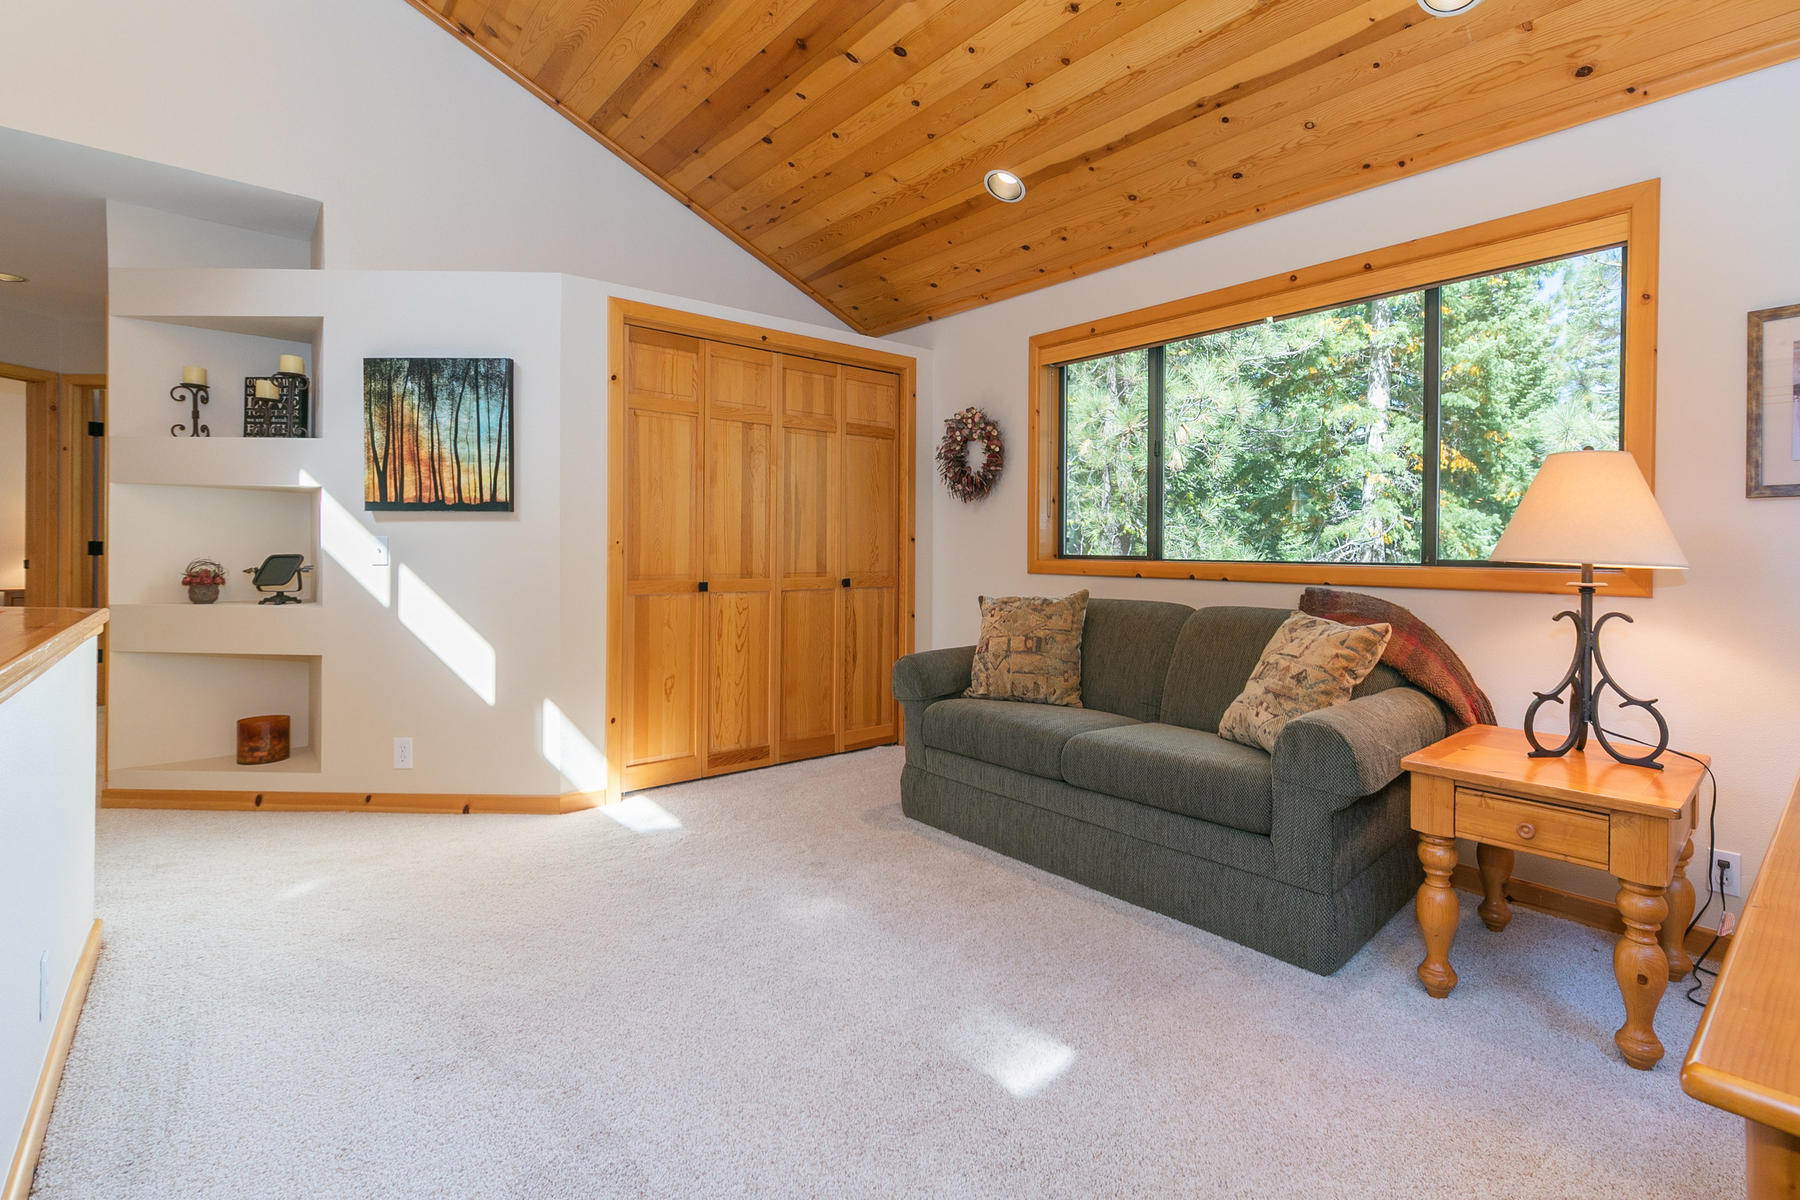 Additional photo for property listing at 11756 Tundra Drive, Truckee, CA 11756 Tundra Dr. Truckee, California 96161 United States